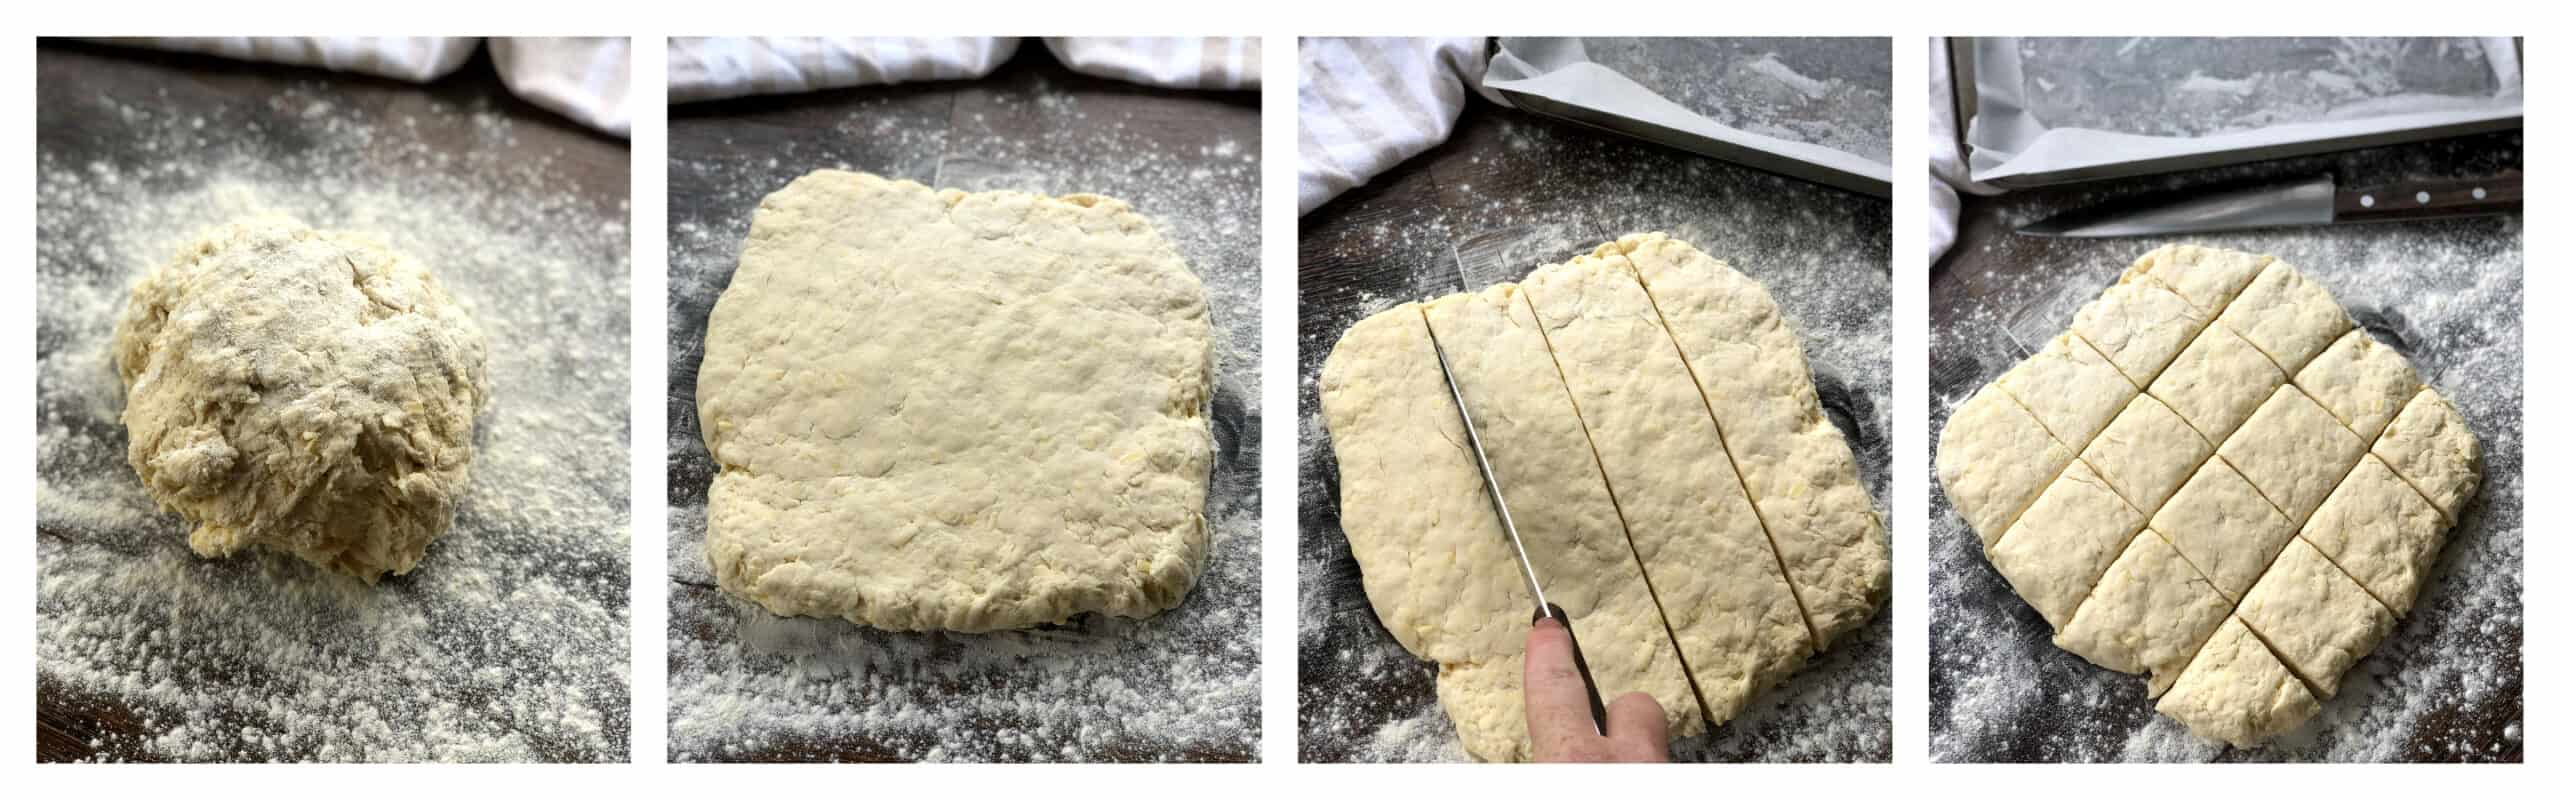 How to cut scones